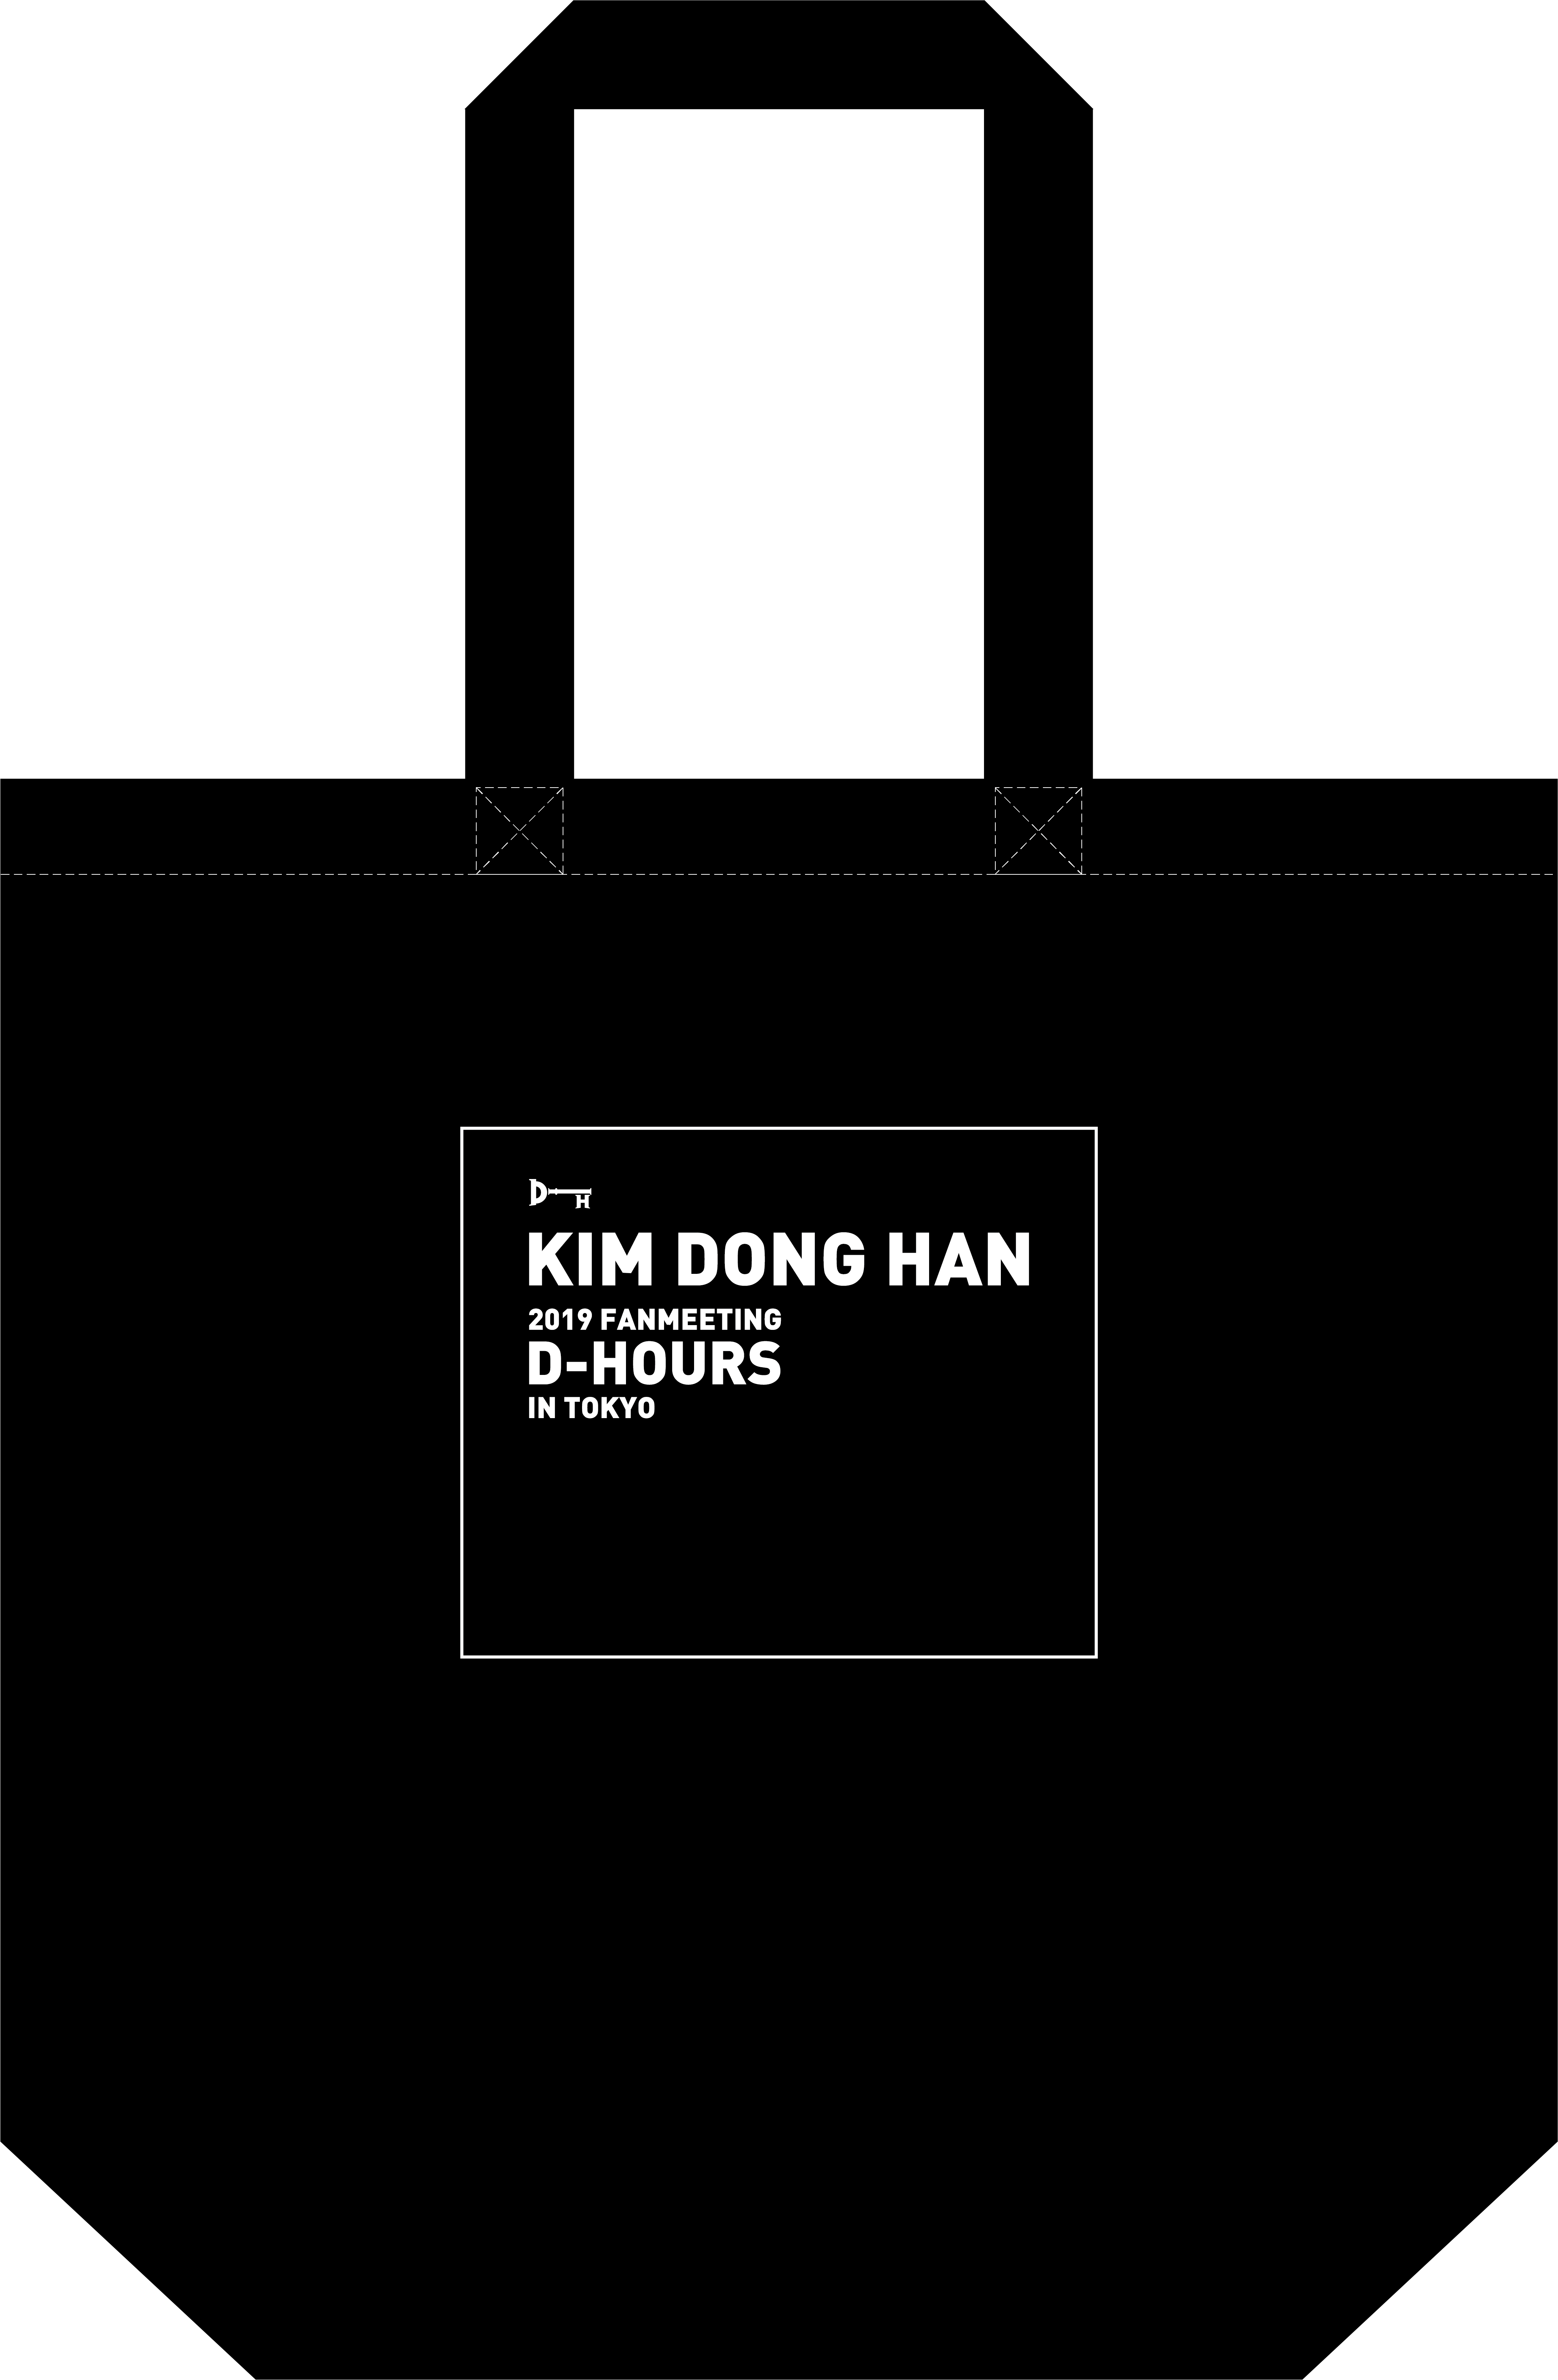 「KIM DONG HAN 2019 FANMEETING D-HOURS IN TOKYO」トートバック